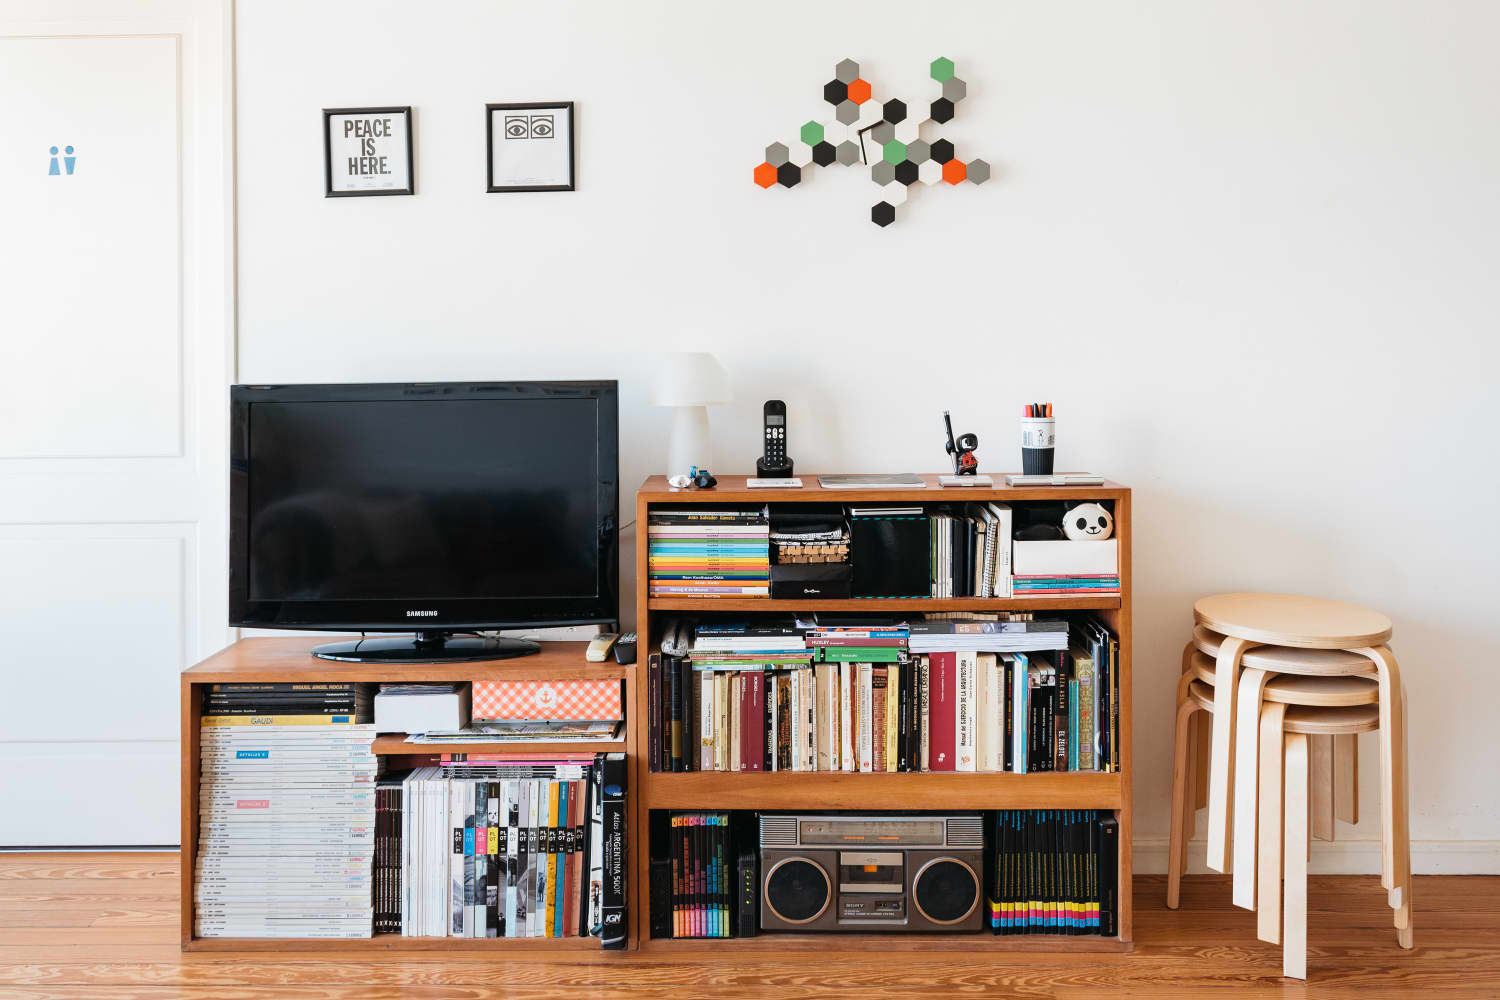 The Number One Clutter Problem, According to Our Readers